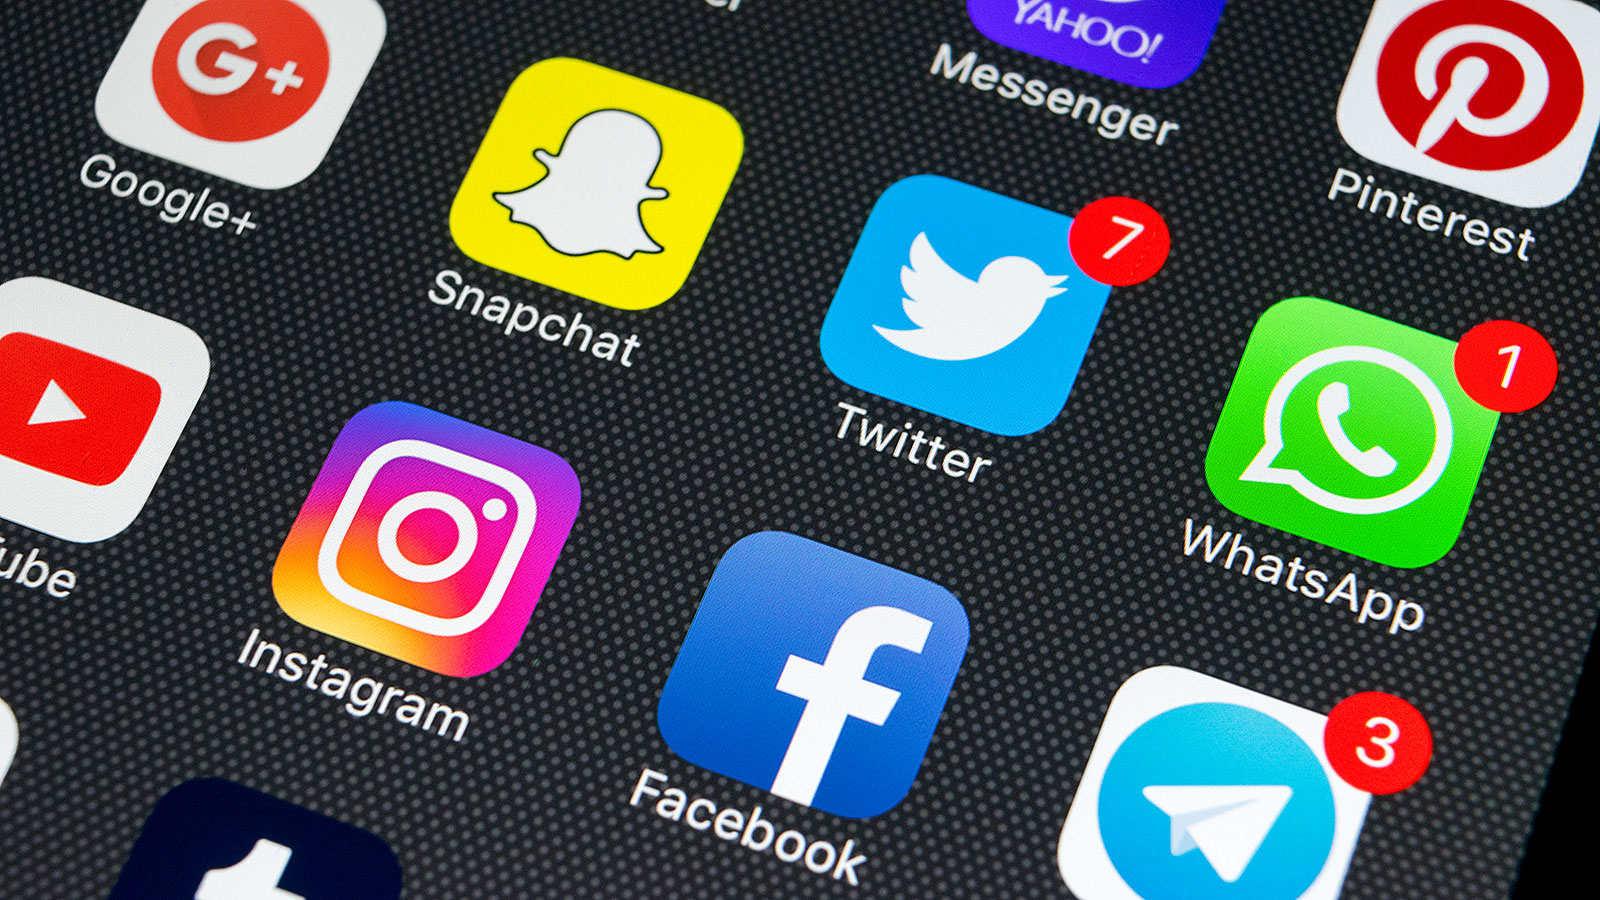 Is it time for a social media makeover? 6 tips to build your brand